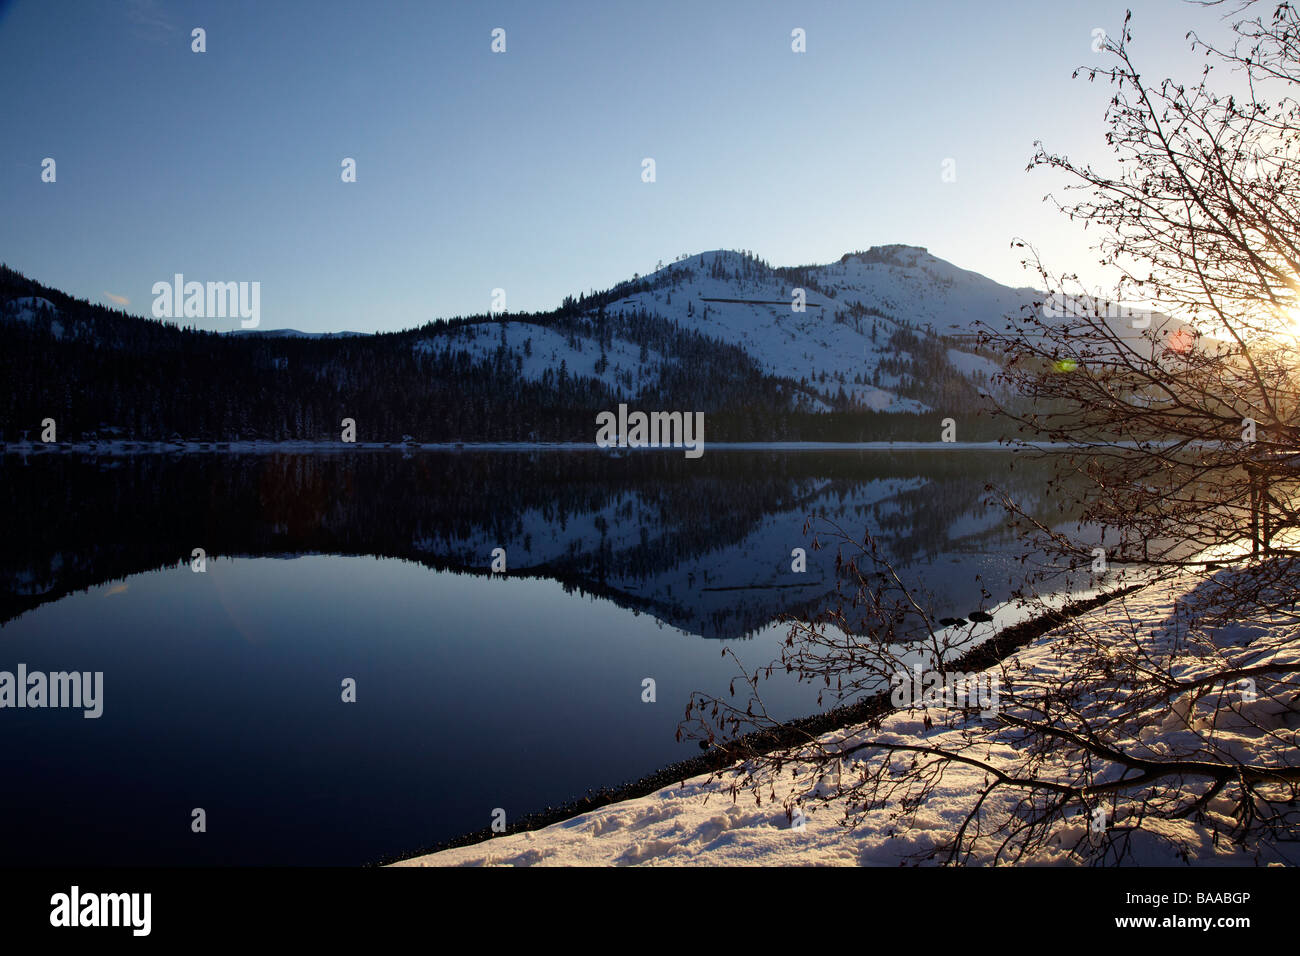 Donner Lake, Truckee, California - Stock Image